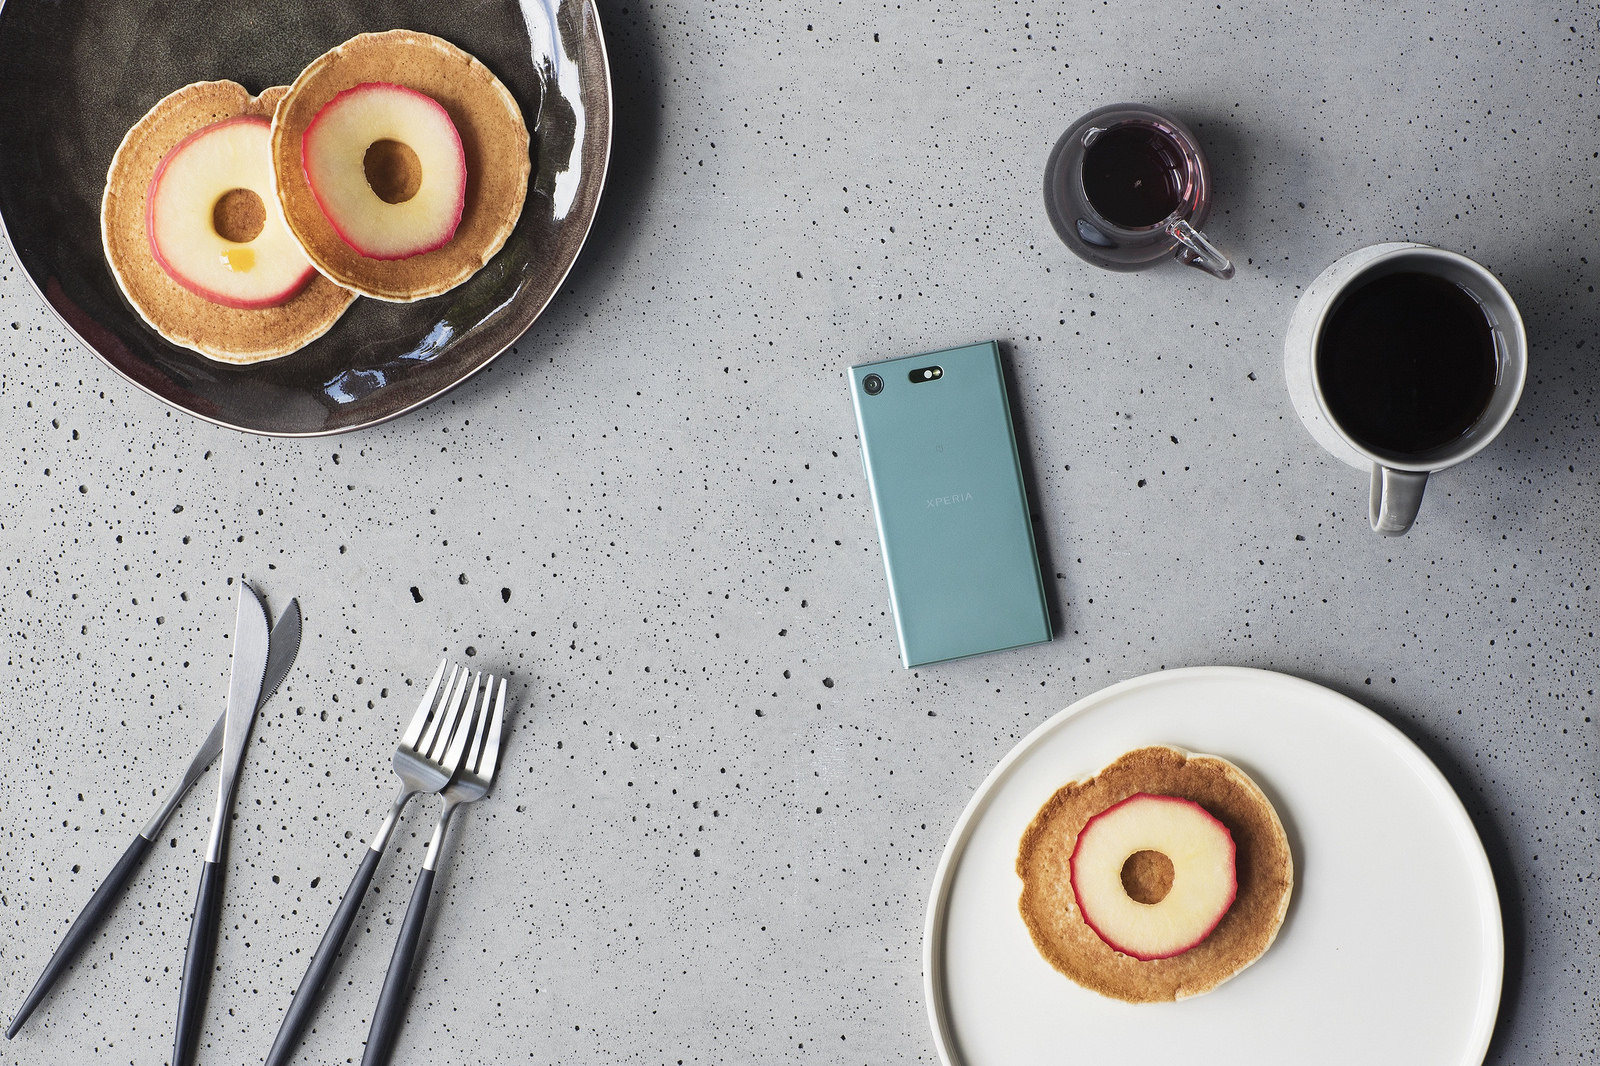 Sony Xperia XZ1 Compact now released in Malaysia for RM2099